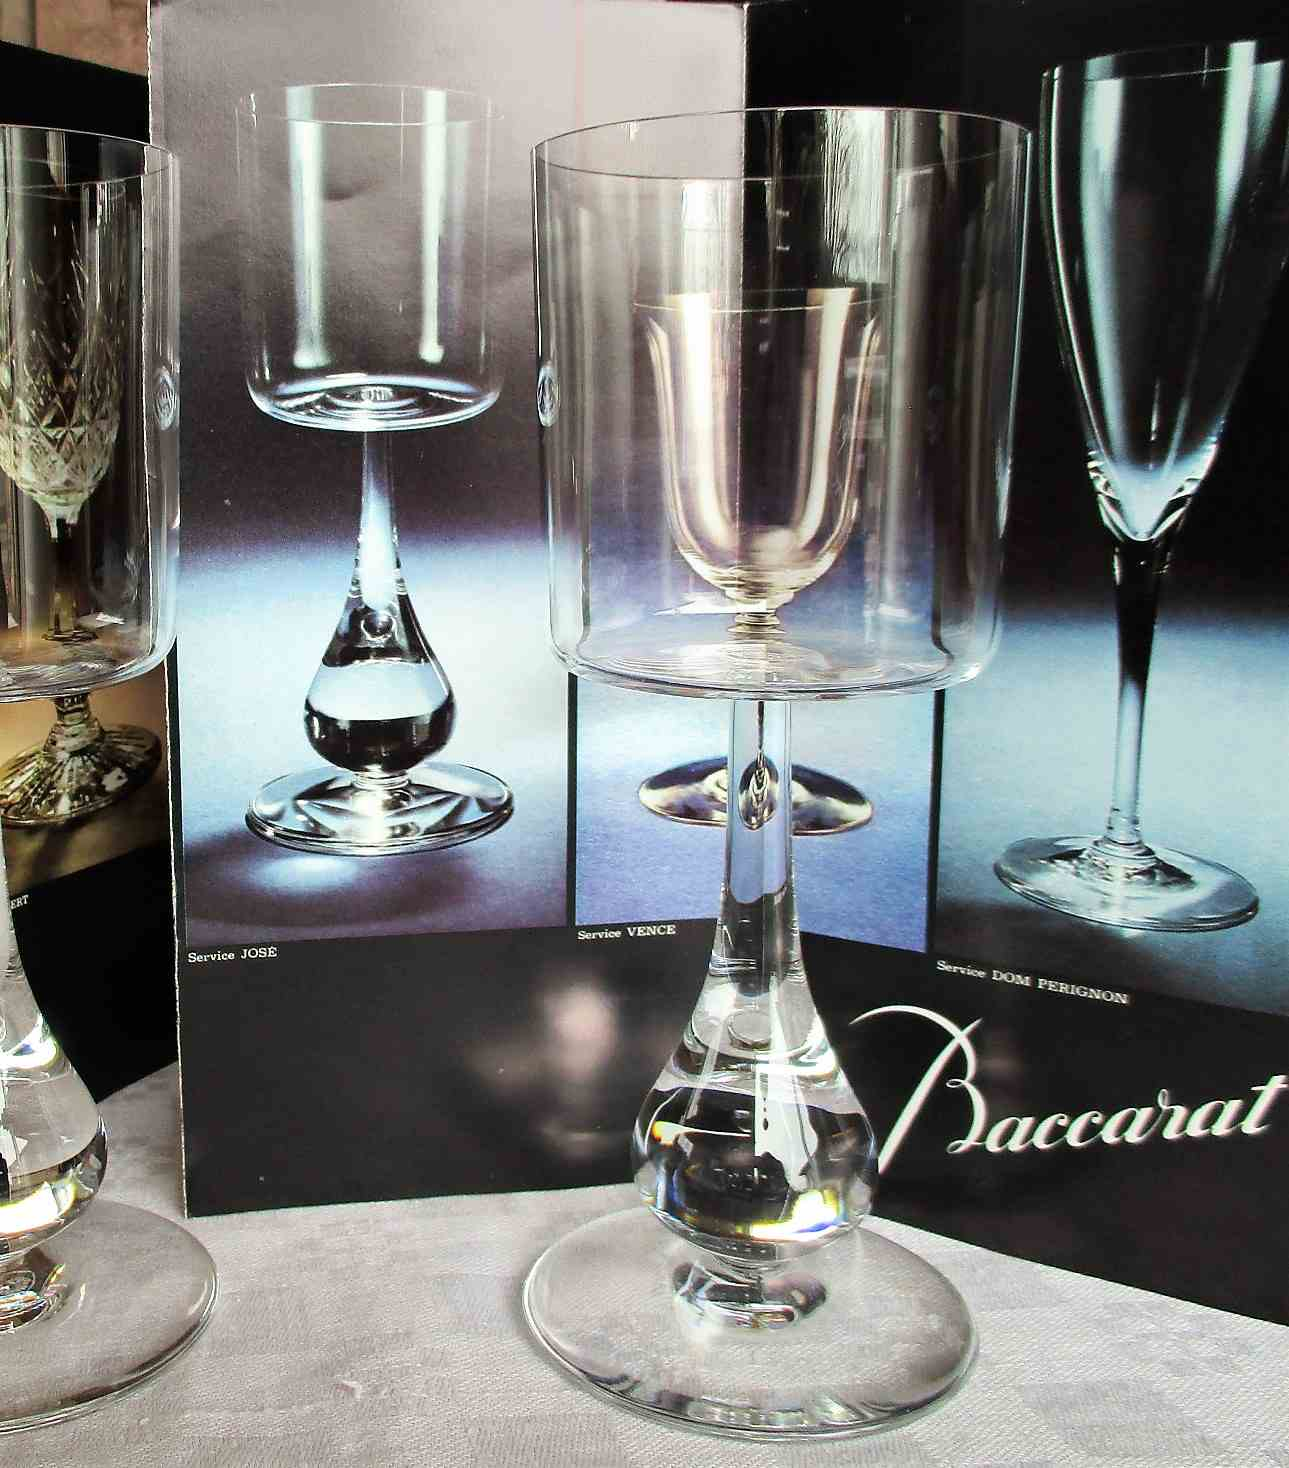 Collection José en cristal de Baccarat 1970